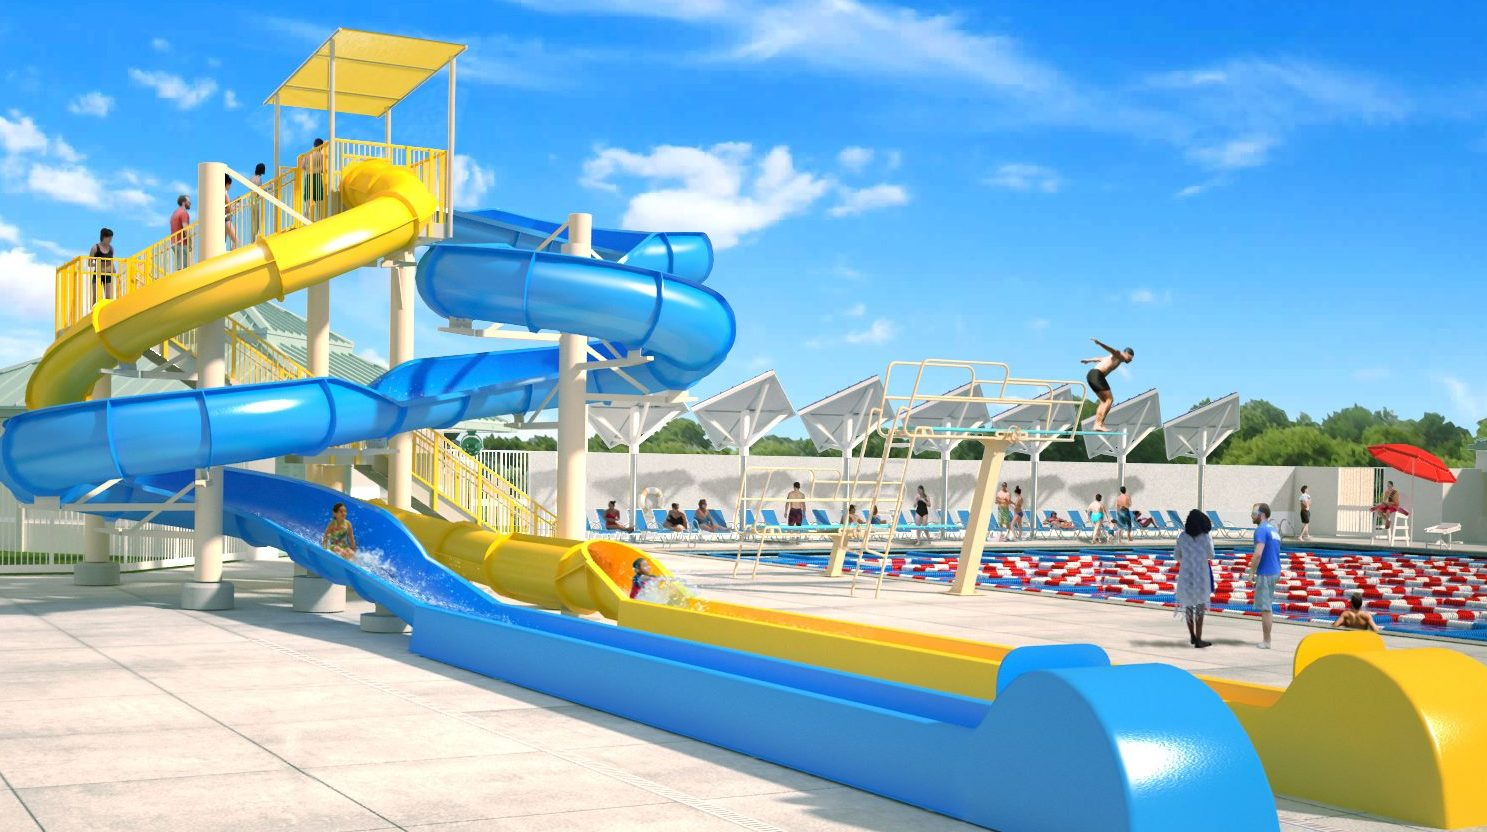 Eagle Lakes Aquatic Facility yellow and blue slide tower